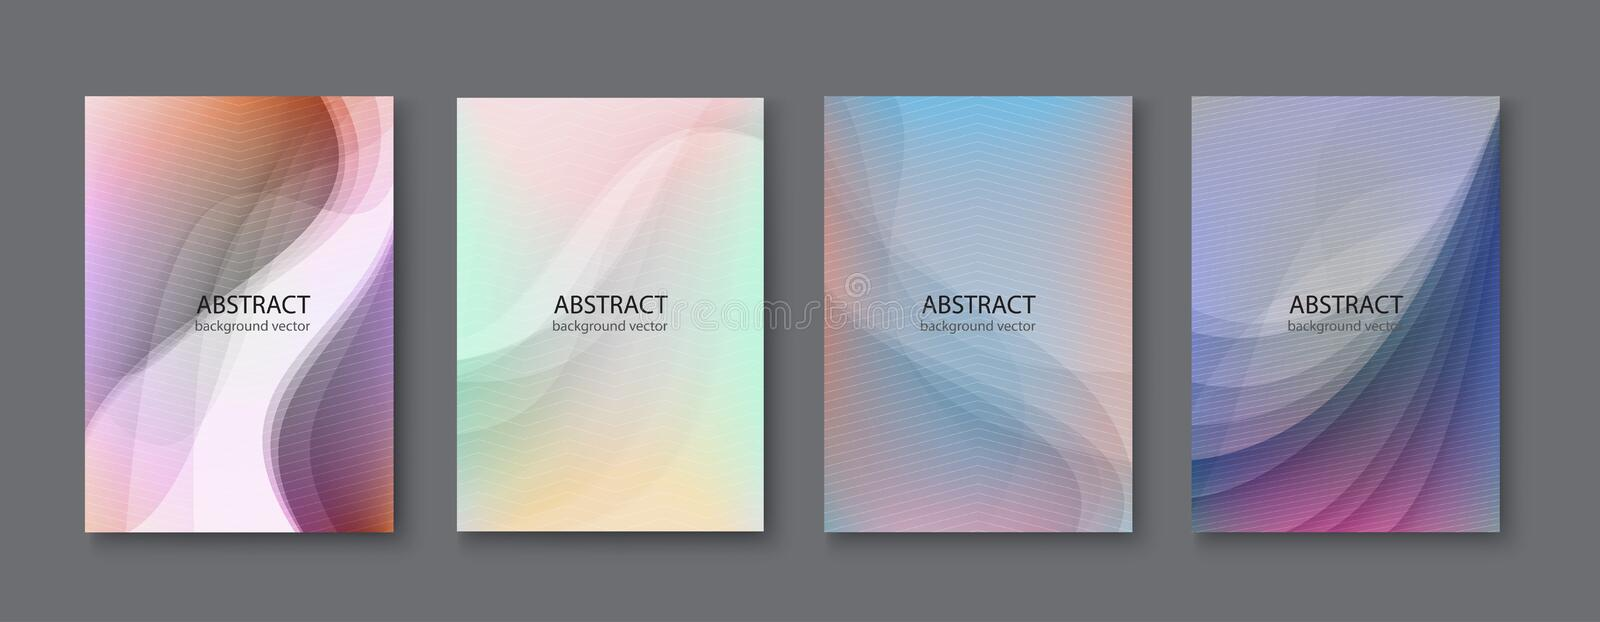 Set of abstract vector backgrounds with line waves.Vector illustration. royalty free illustration